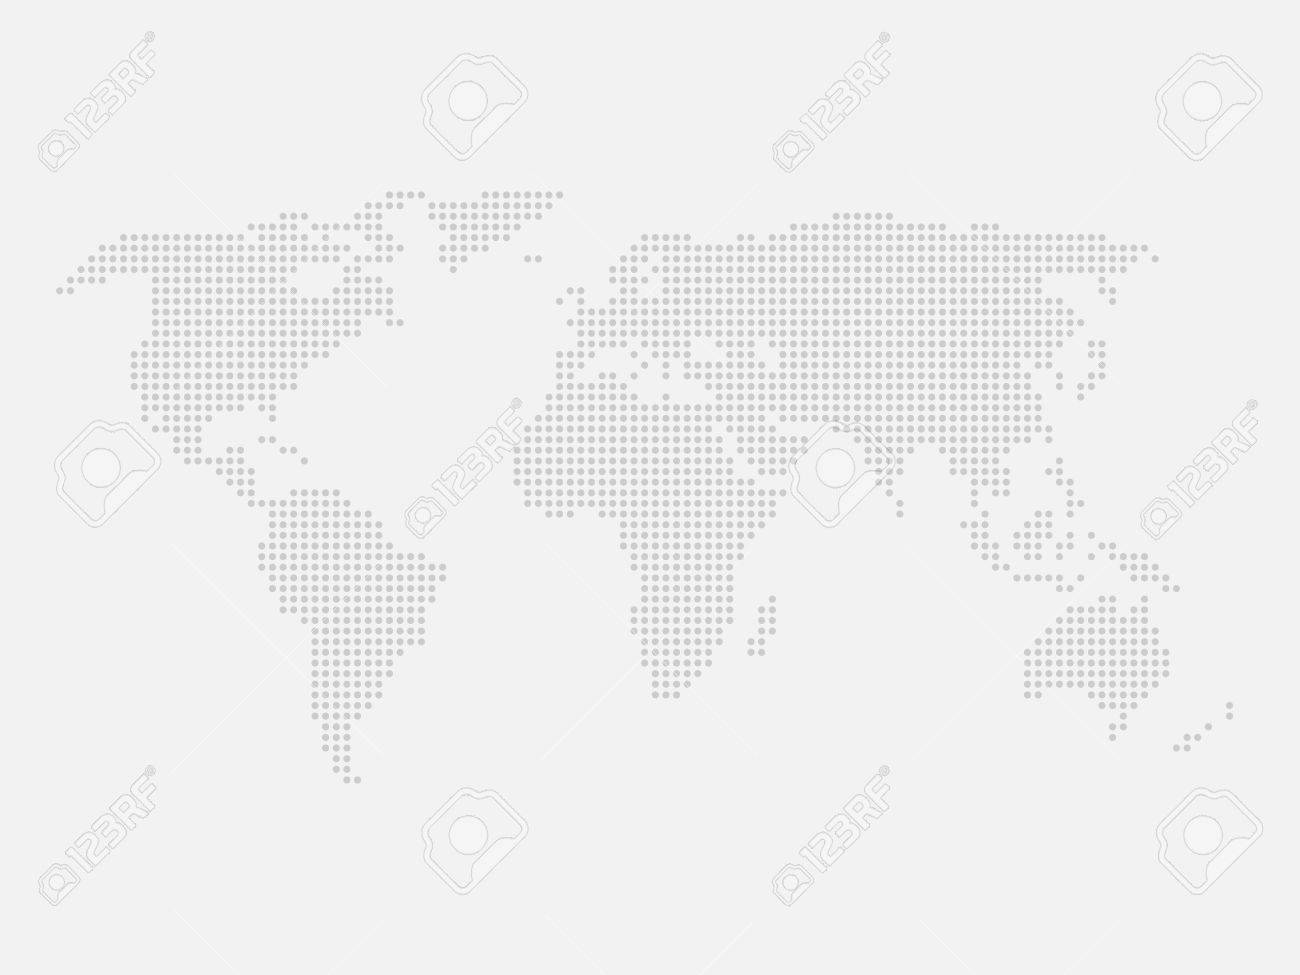 Dotted world map grey map on light background vector illustration dotted world map grey map on light background vector illustration made of small circles gumiabroncs Image collections